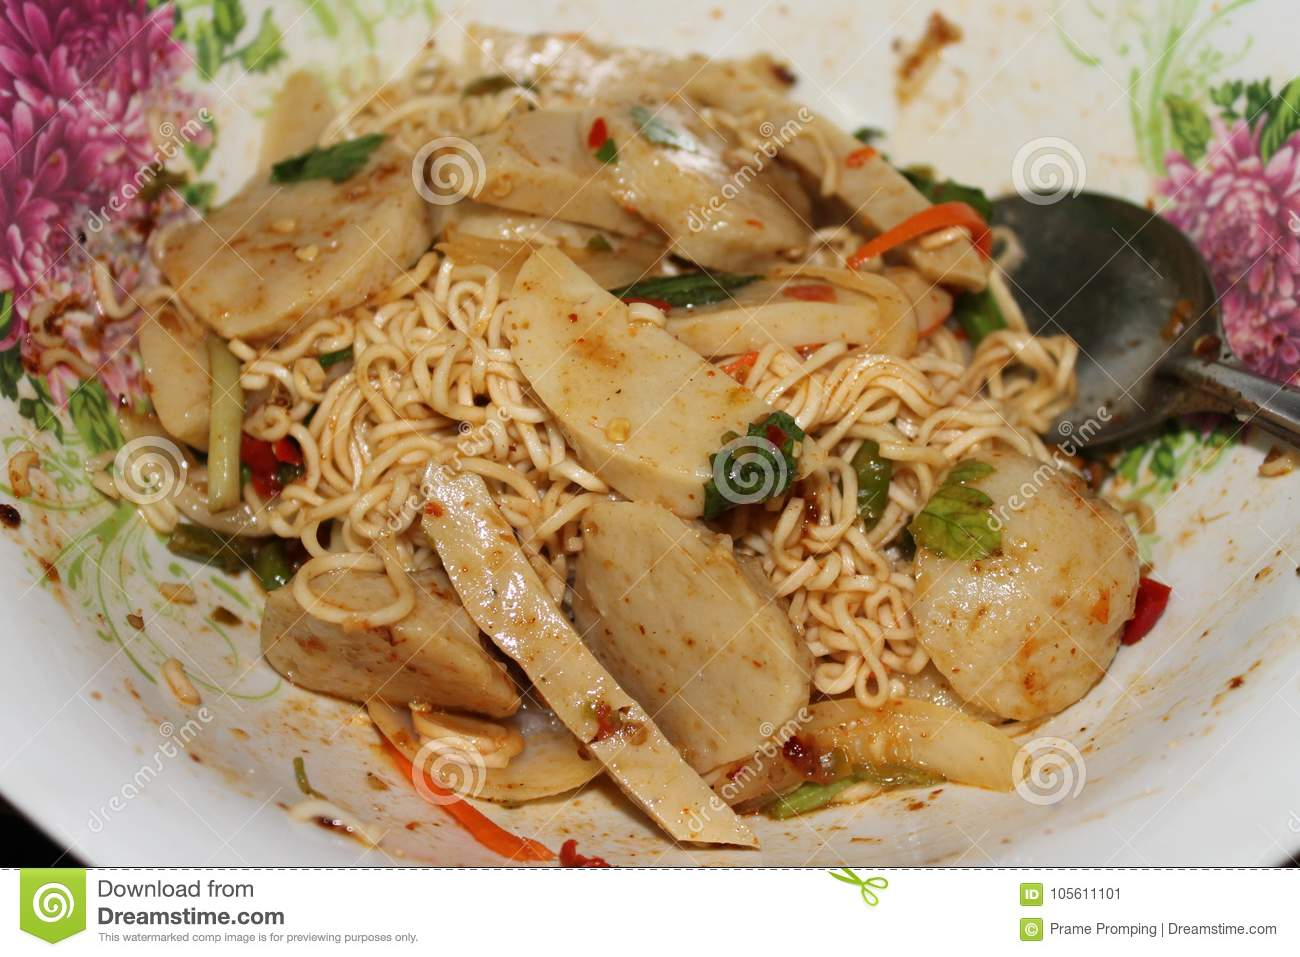 Hot and spicy stock image  Image of pork, noodles, meatball